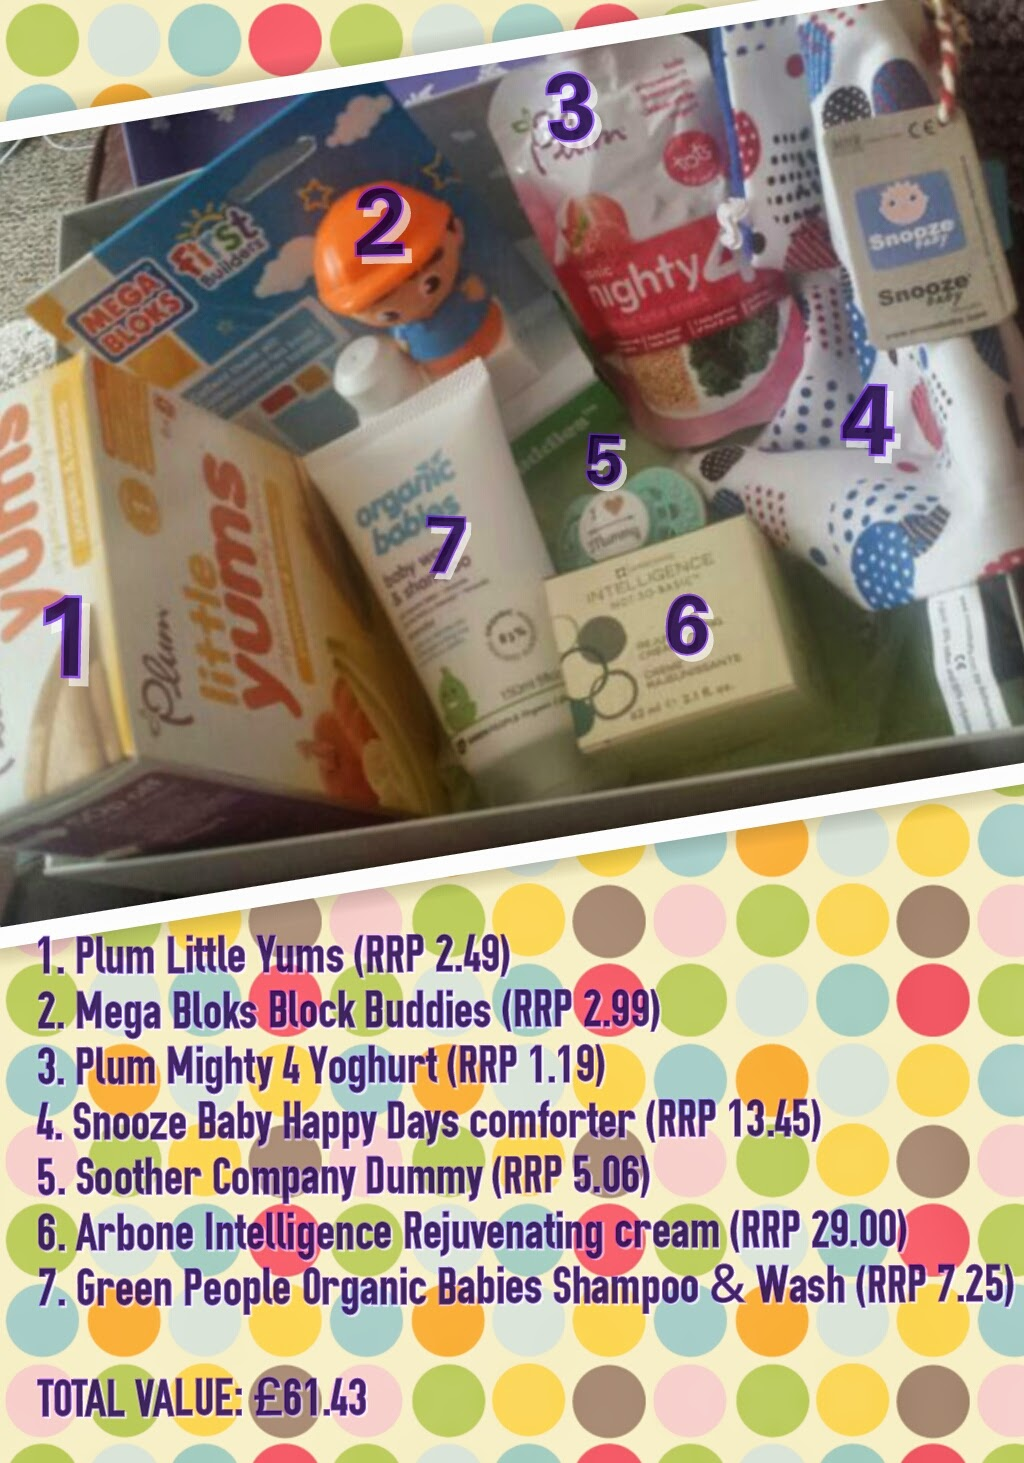 nonabox contents for april 2014